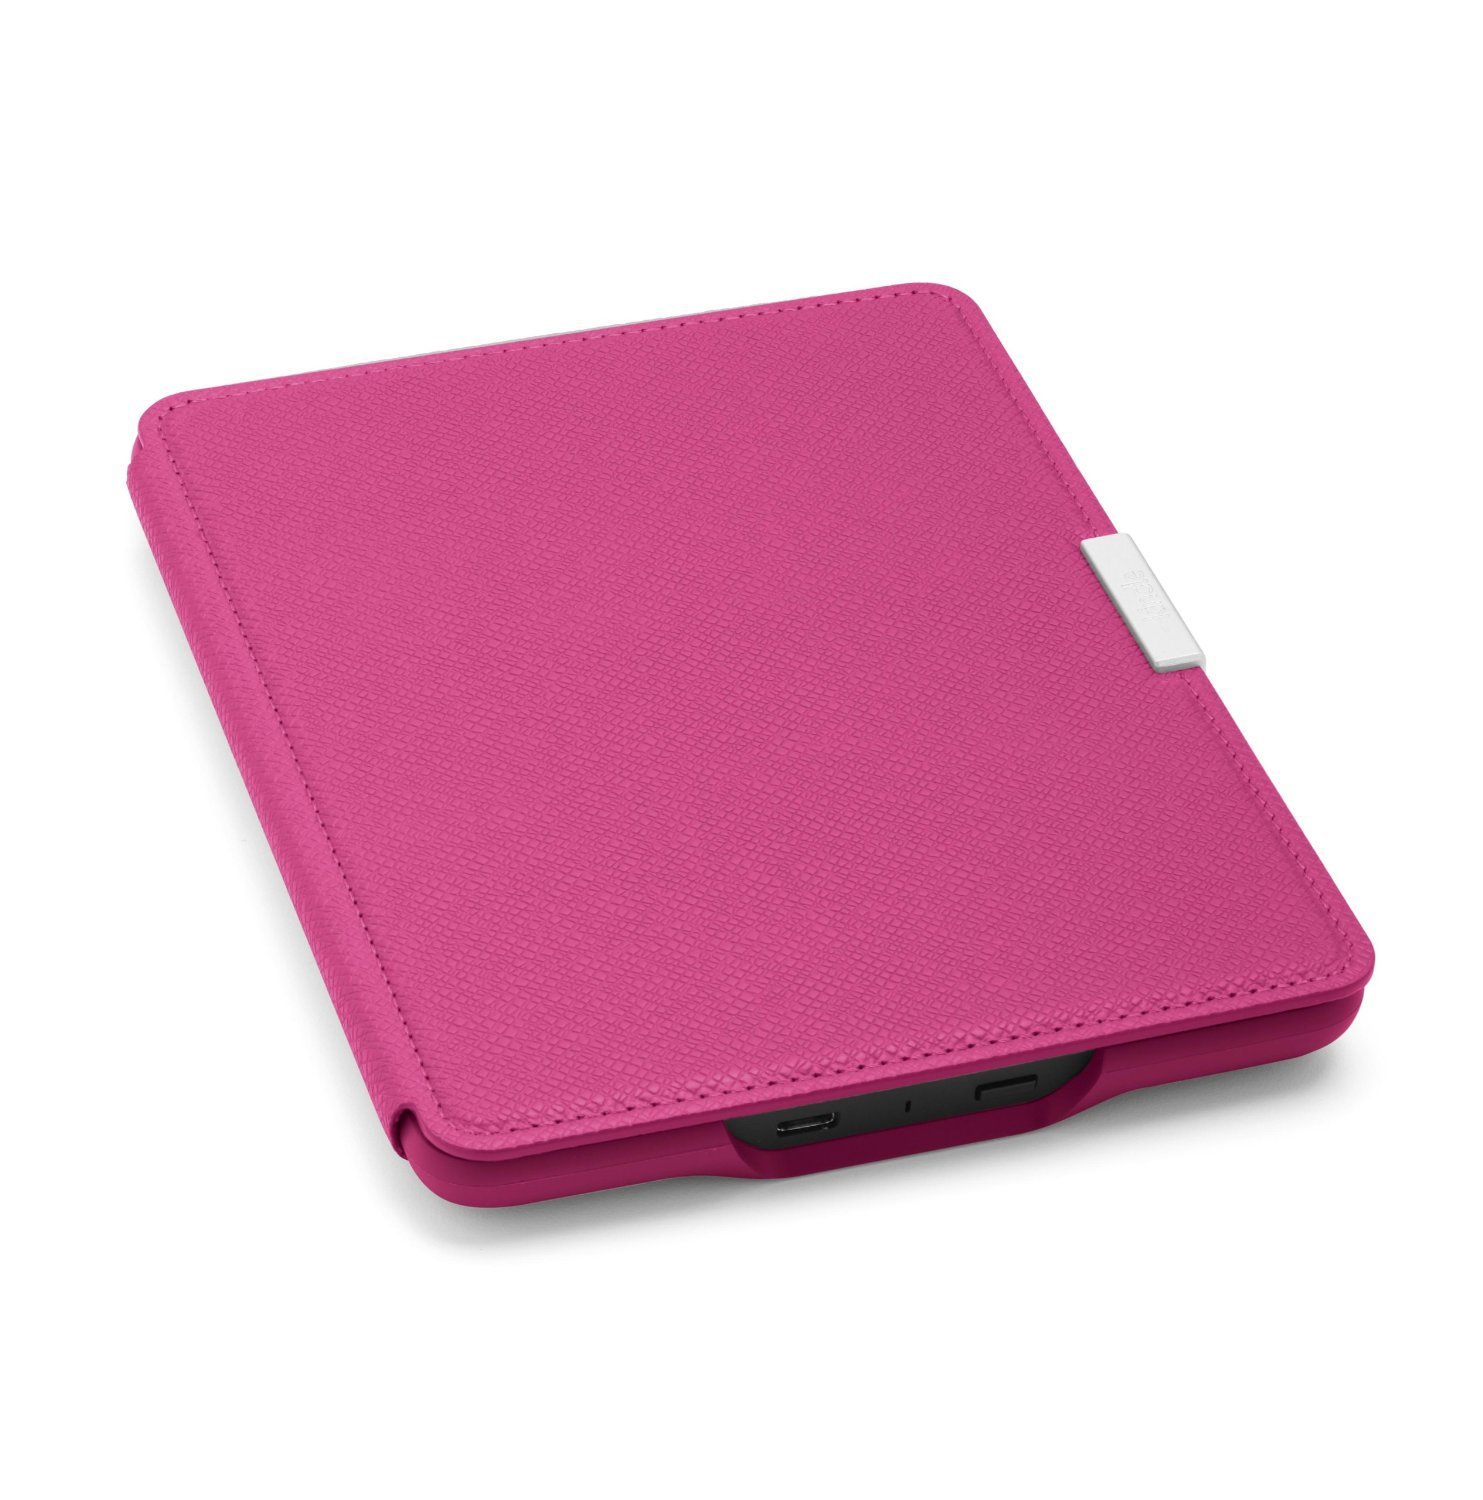 Чехол Leather Cover для Amazon Kindle Paperwhite Fuchsia (Розовый). Фото N2